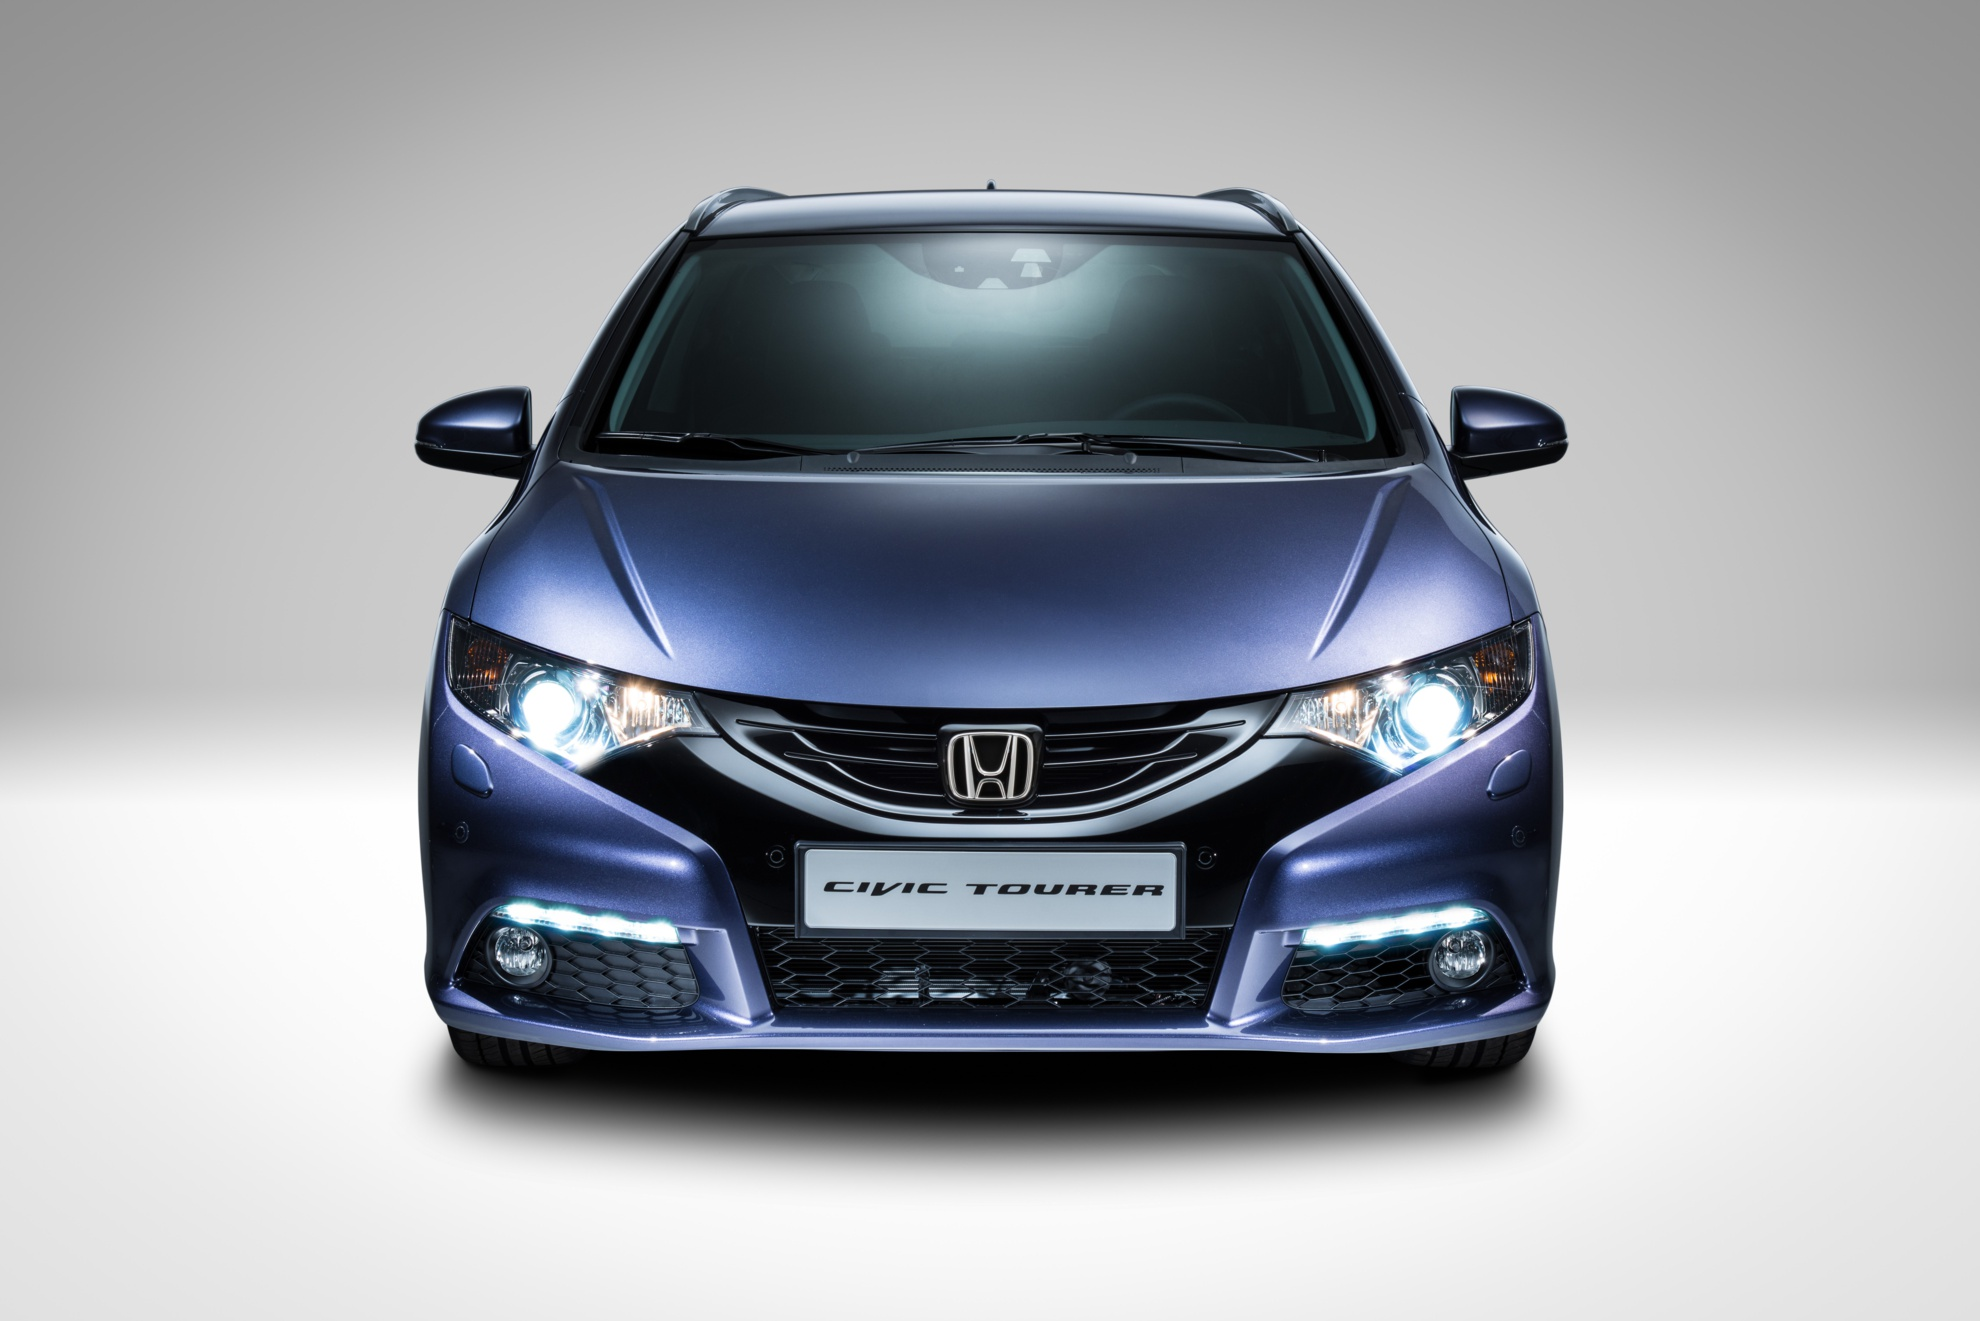 Honda-Civic-Tourer-08